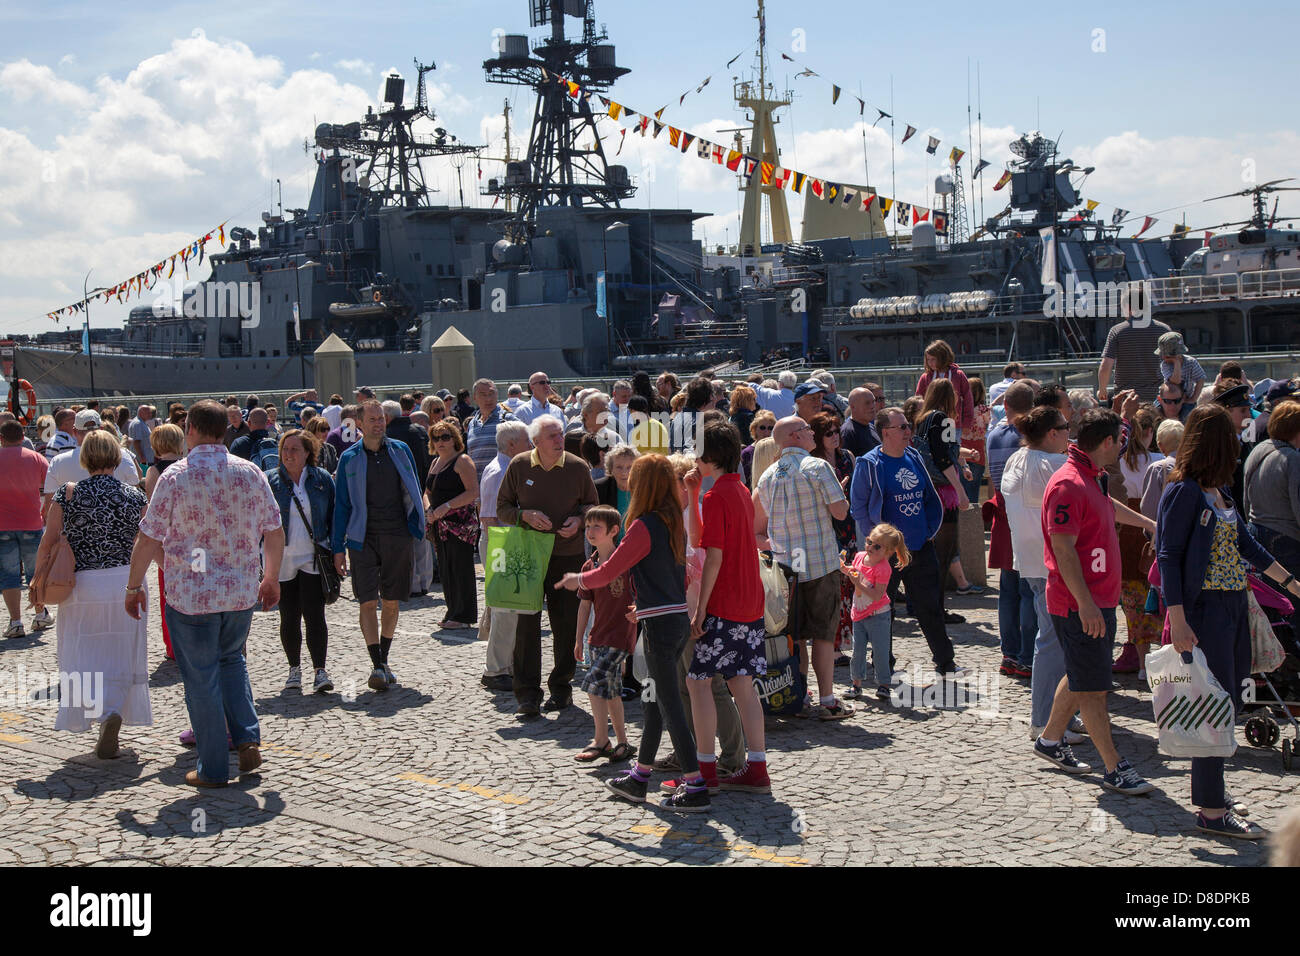 Liverpool, Merseyside, UK, 26th May, 2013.  Crowds in front of the Russian destroyer Vice Admiral Kulakov berthed - Stock Image